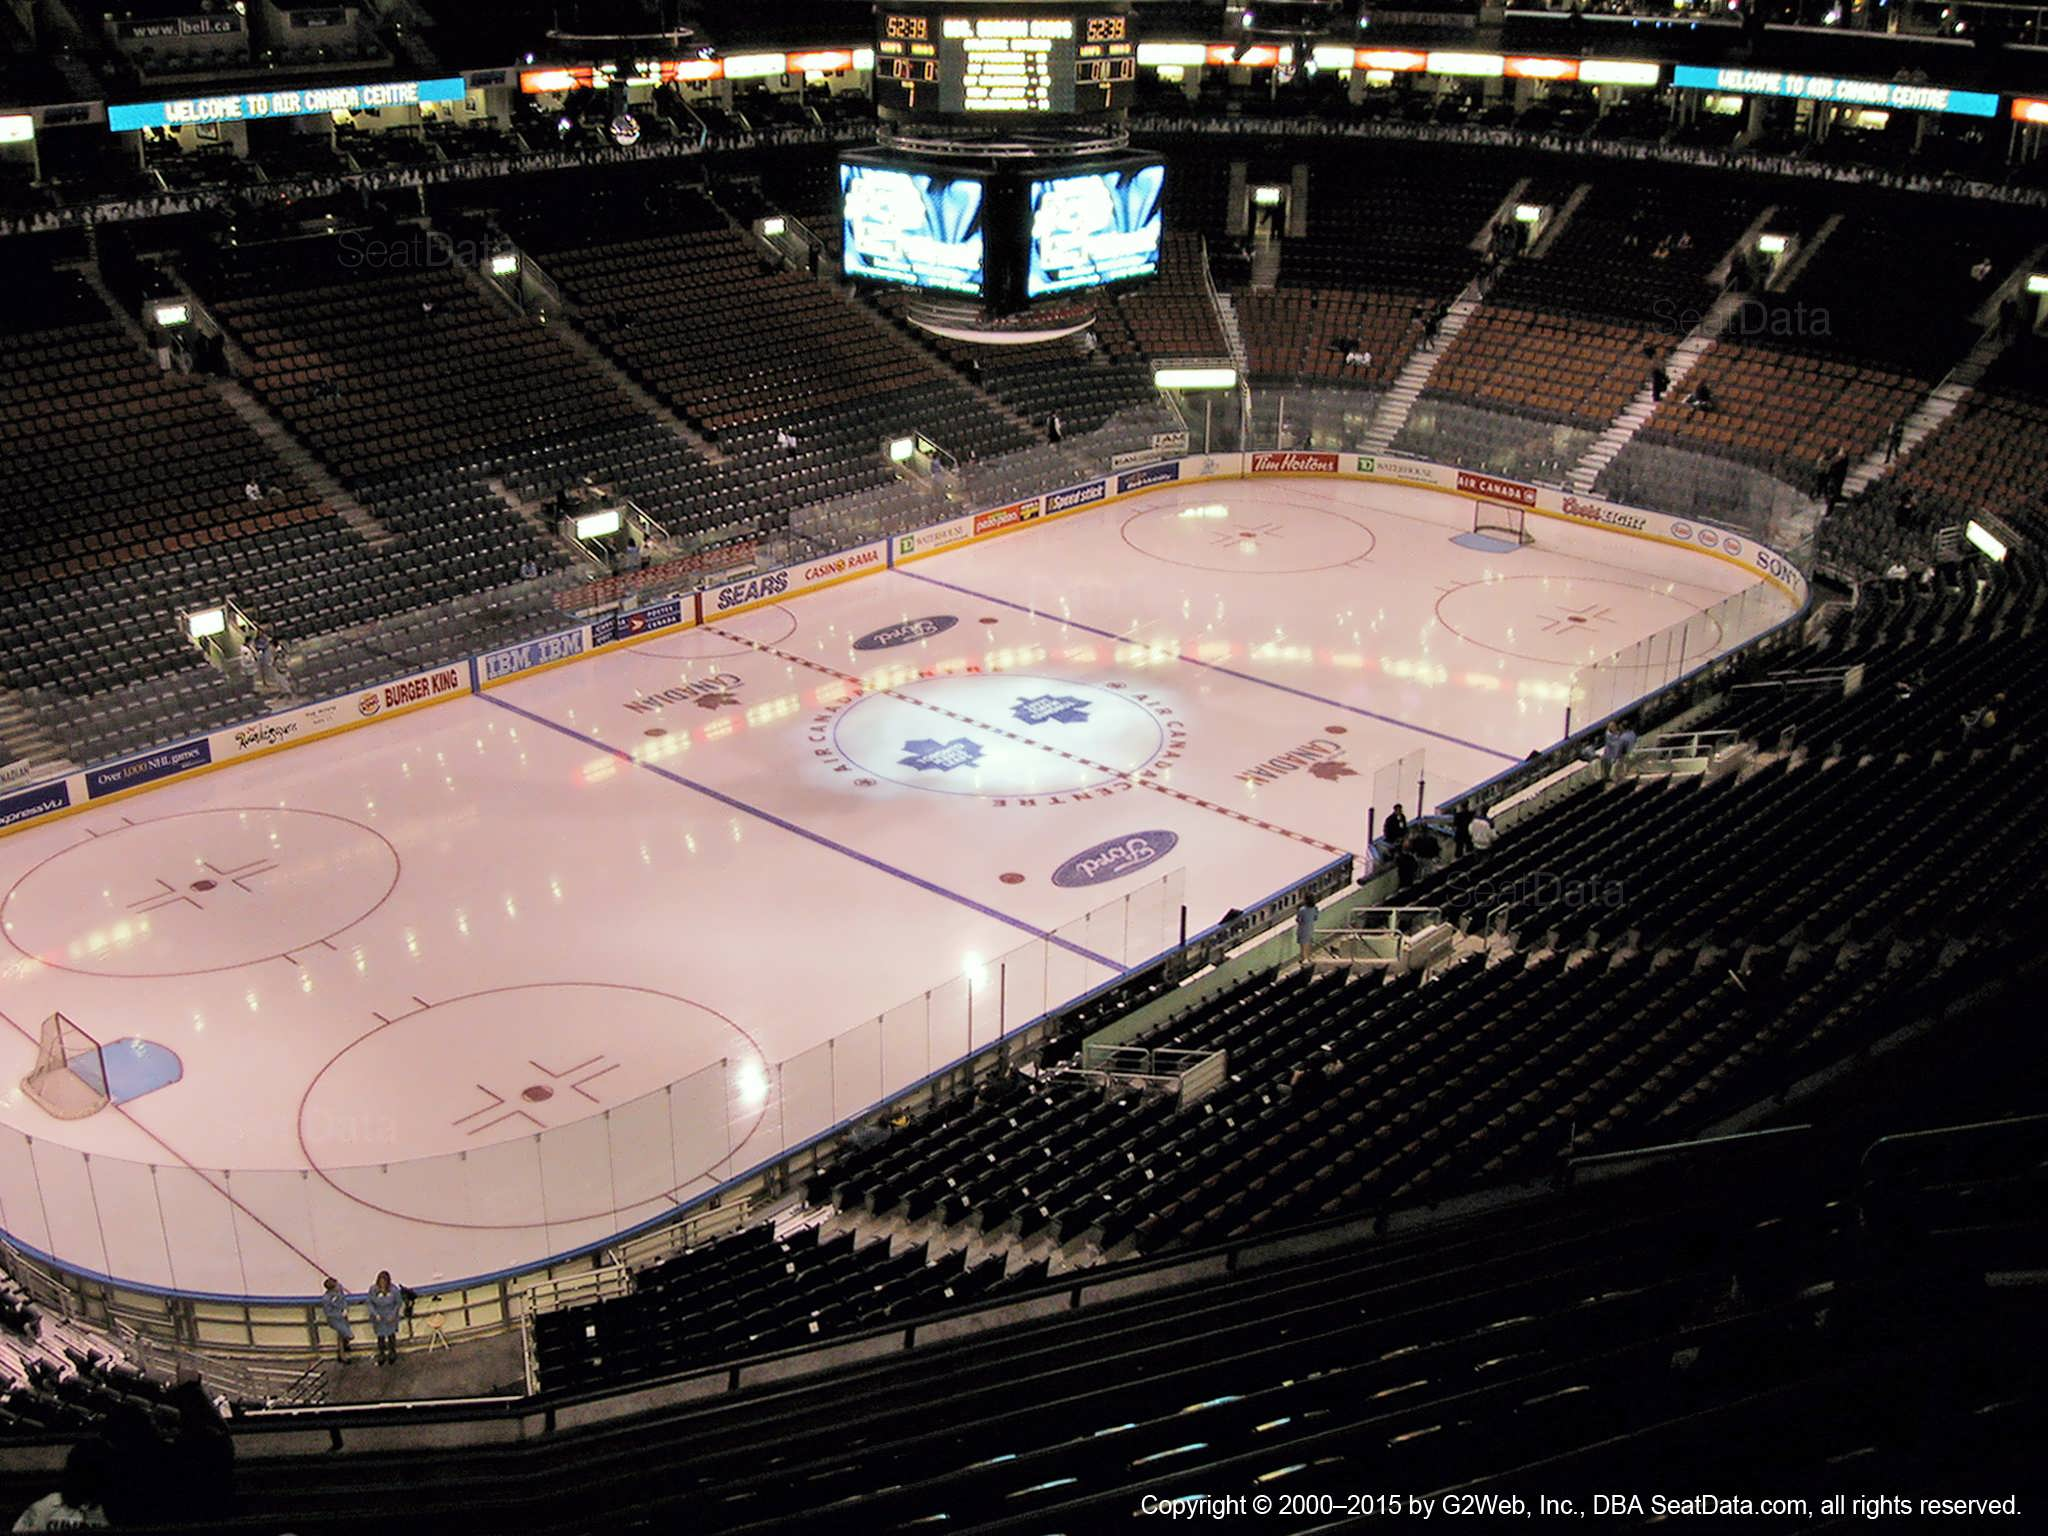 Toronto Maple Leafs Seat View for Scotiabank Arena Section 324